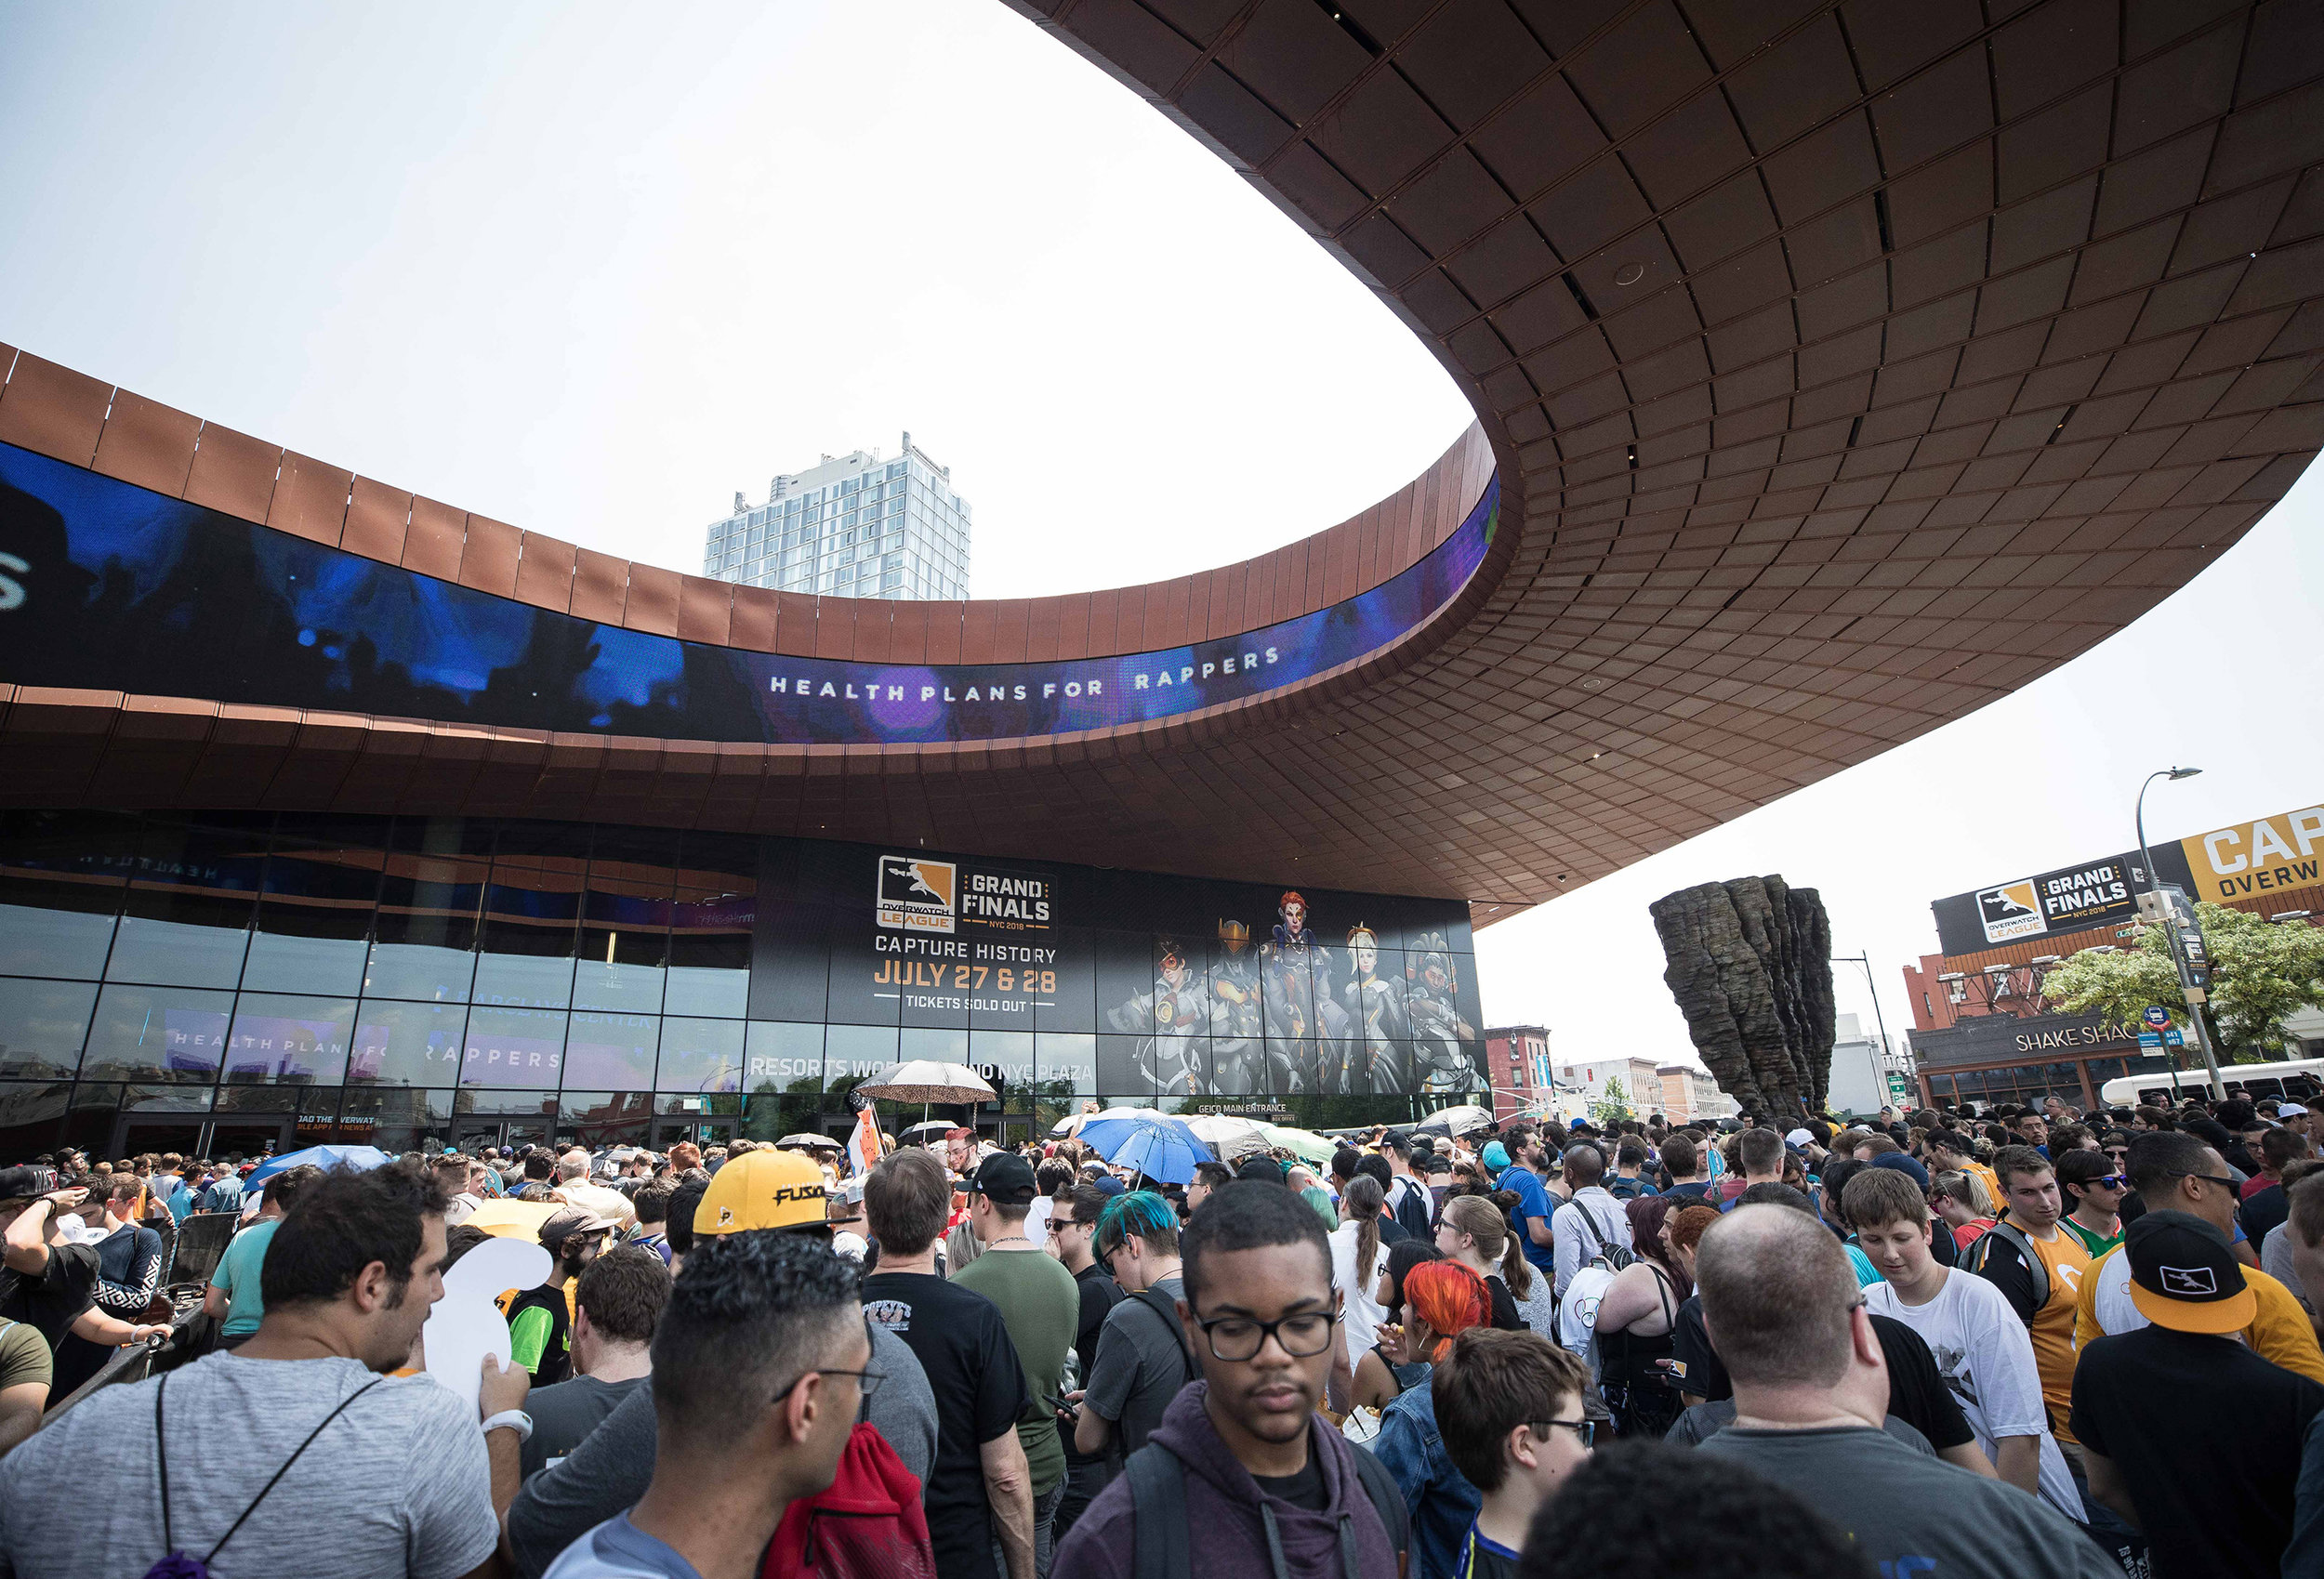 Overwatch League Grand Finals, crowd gathers outside to watch London Spitfire vs Philadelphia Fusion at Barclays Center on July 27, 2018 in Brooklyn, New York.  Photo by Hannah Smith / ESPAT Media